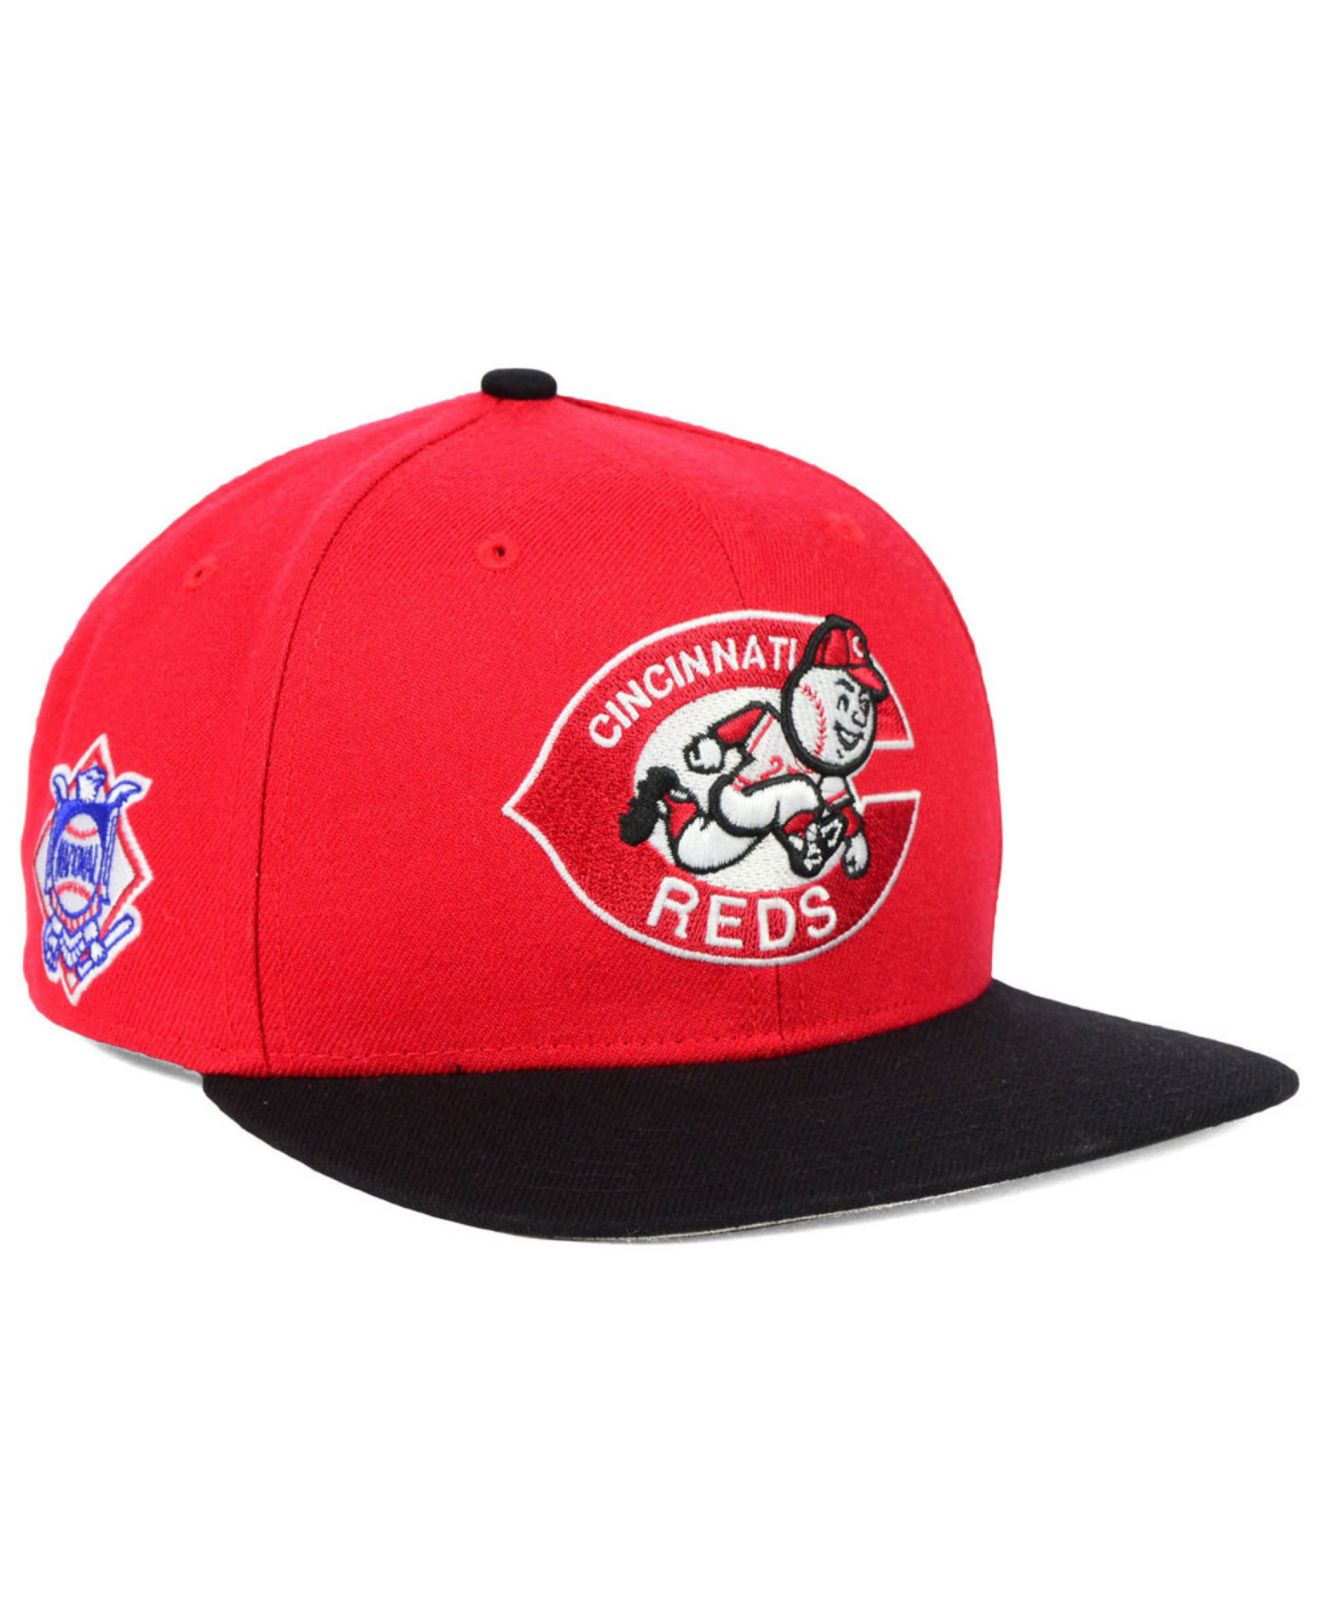 low priced 2153c 653f5 ... closeout lyst 47 brand cincinnati reds sure shot snapback cap in red  for men 0be0b 3b501